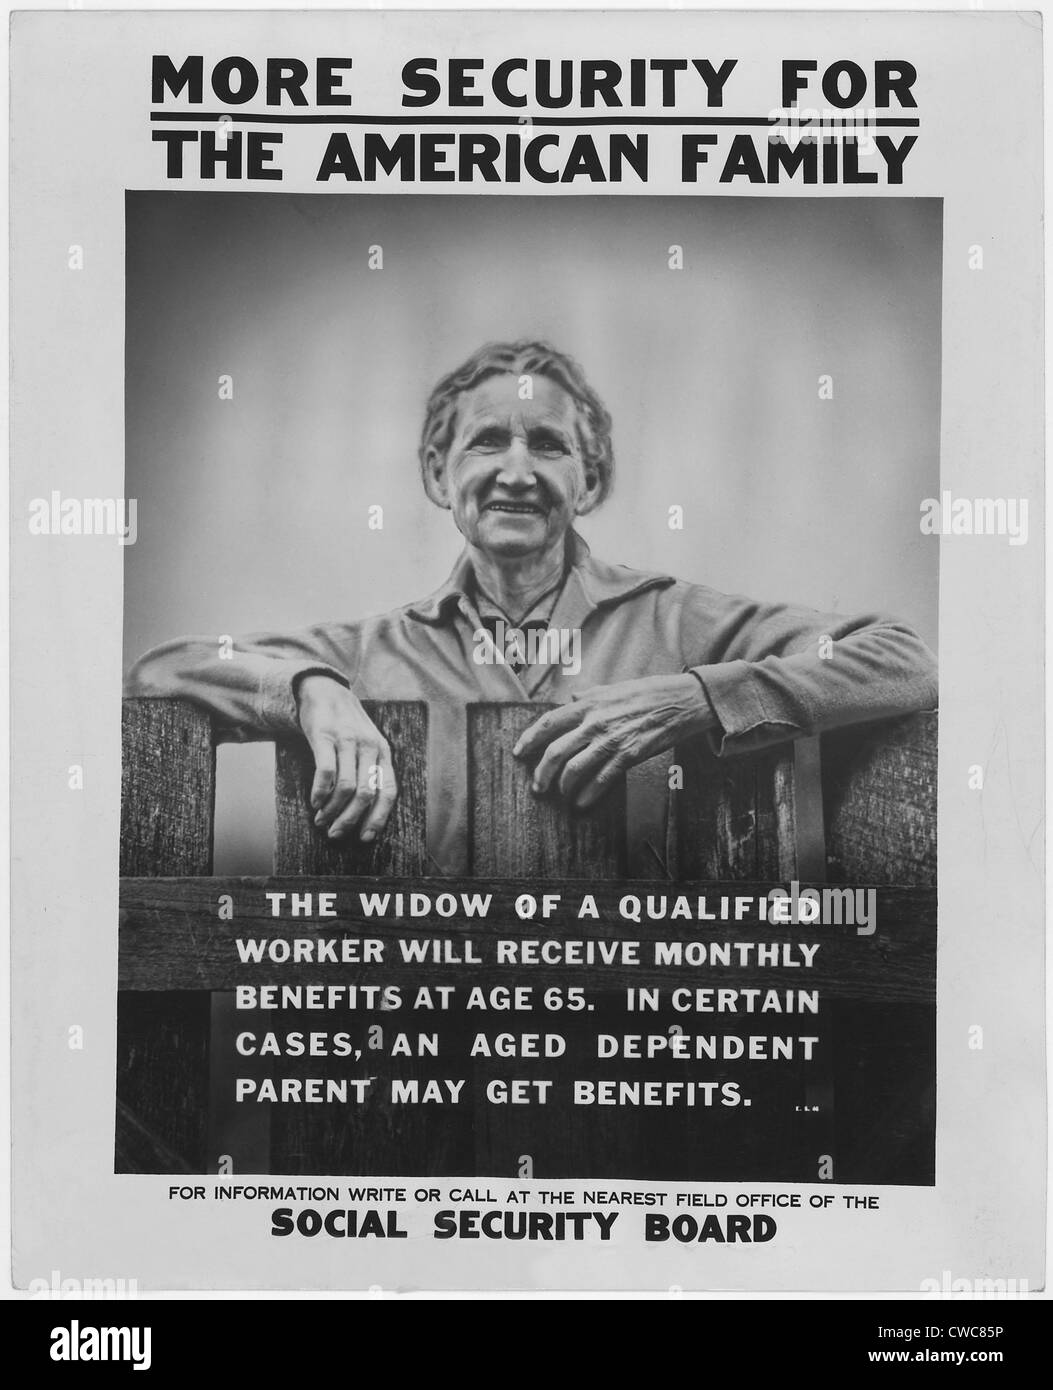 1930s poster publicizing the benefits available to widows under the new Social Security programs. - Stock Image